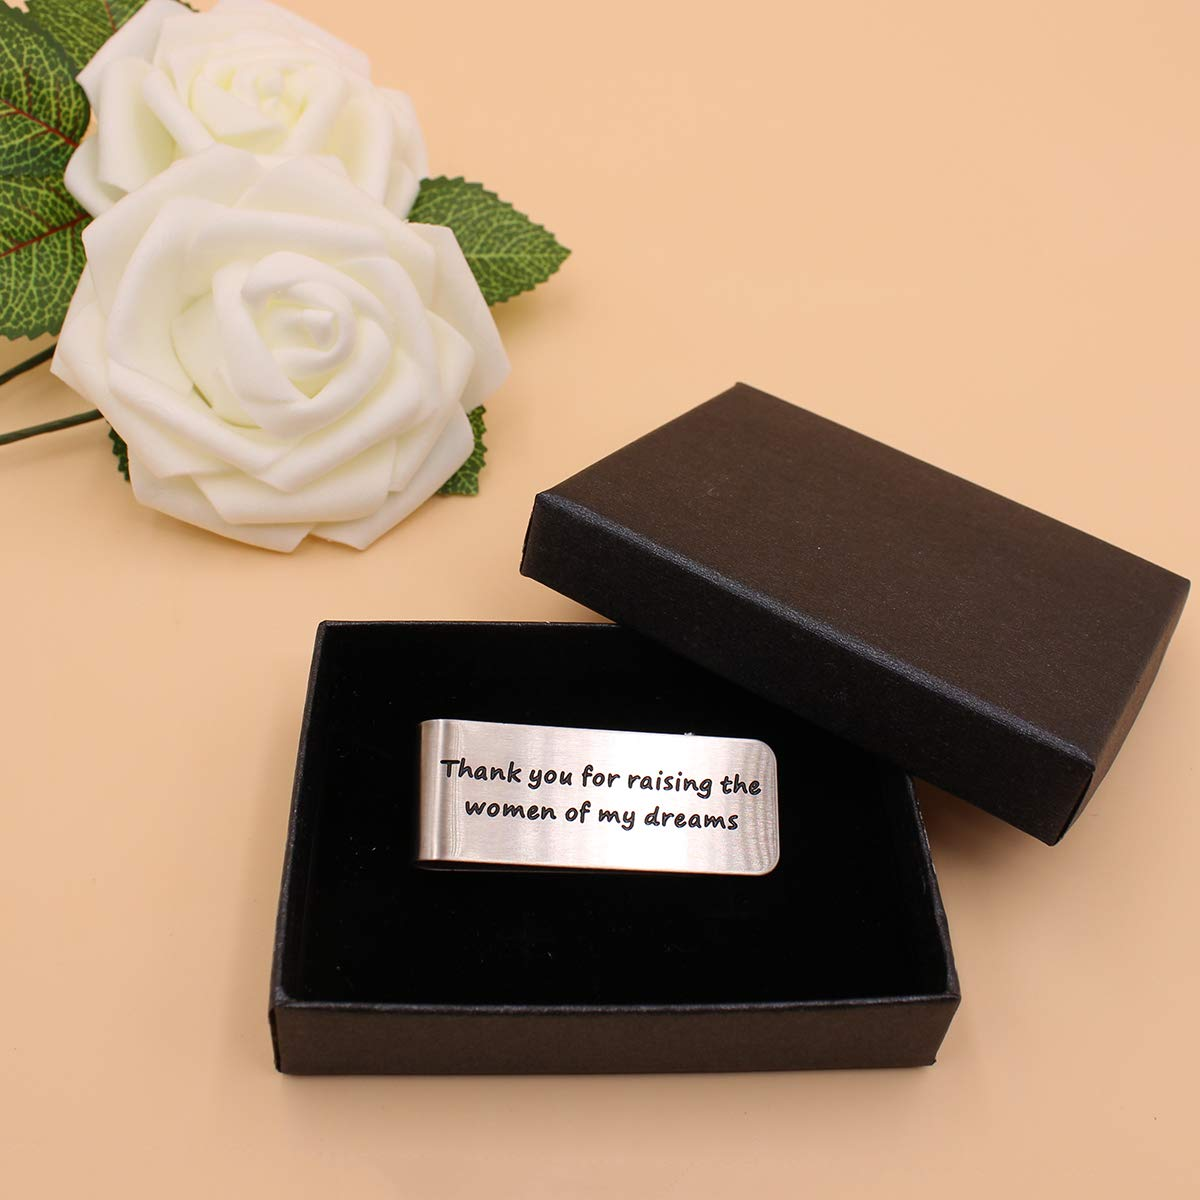 Money Clip Dad Wedding gift from The Groom,Idea Gifts Present for Man Dad Father Father of The Bride Thank you for raising the women of my dreams/,Wedding Gift